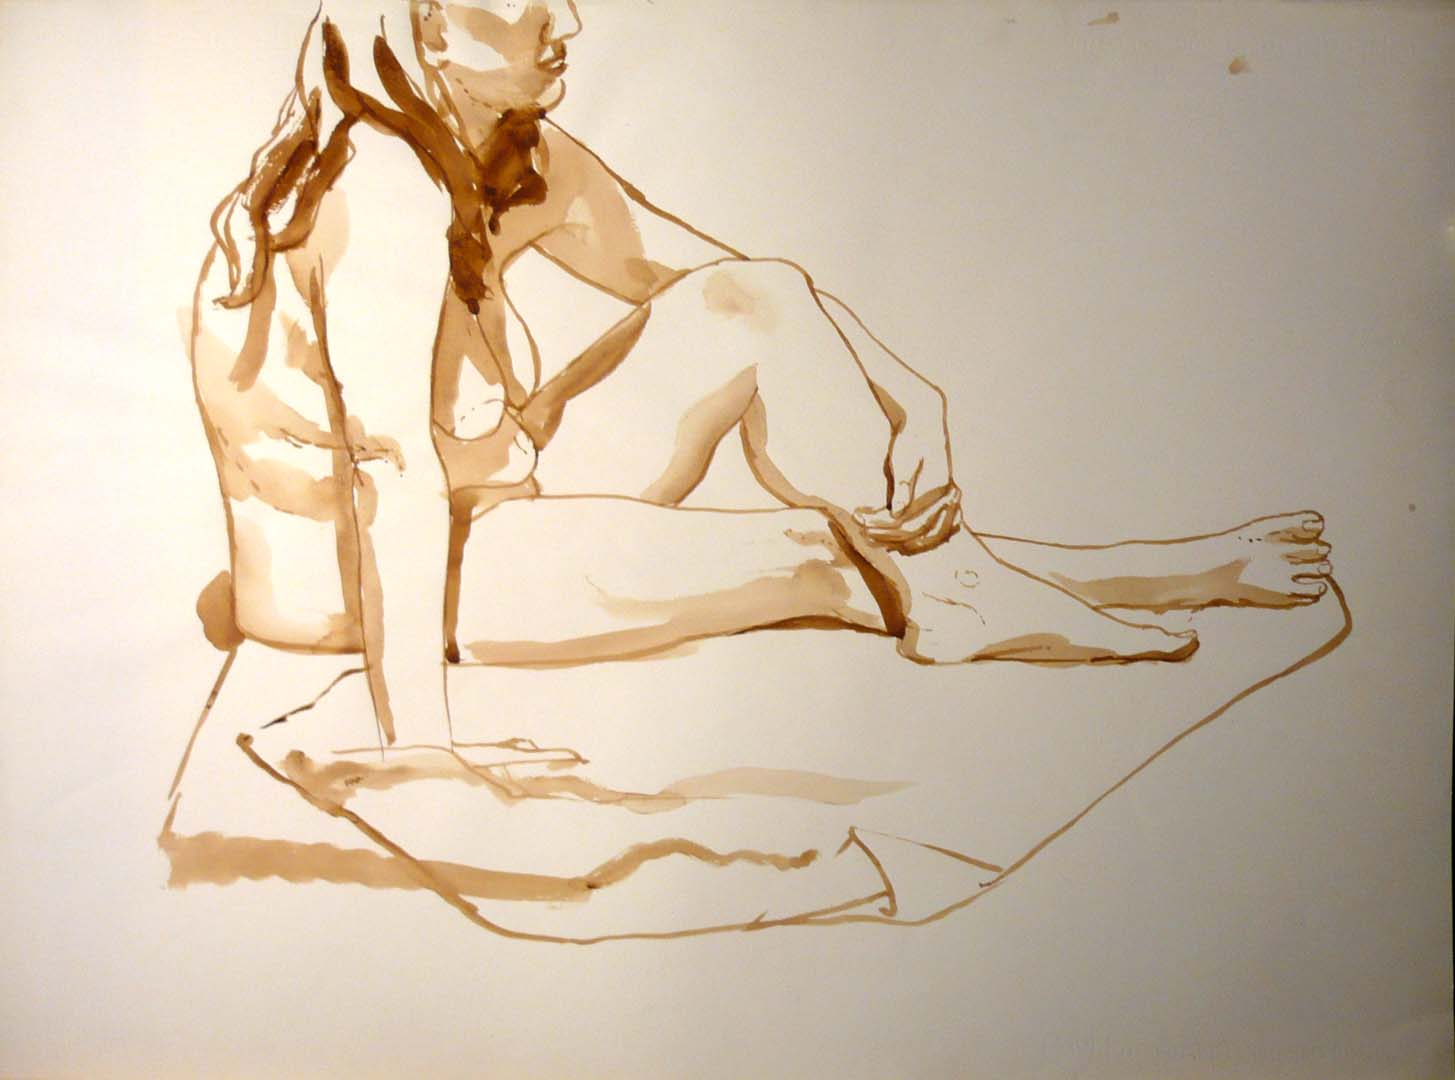 "Female Seated on Drape Sepia 22"" x 29.875"""